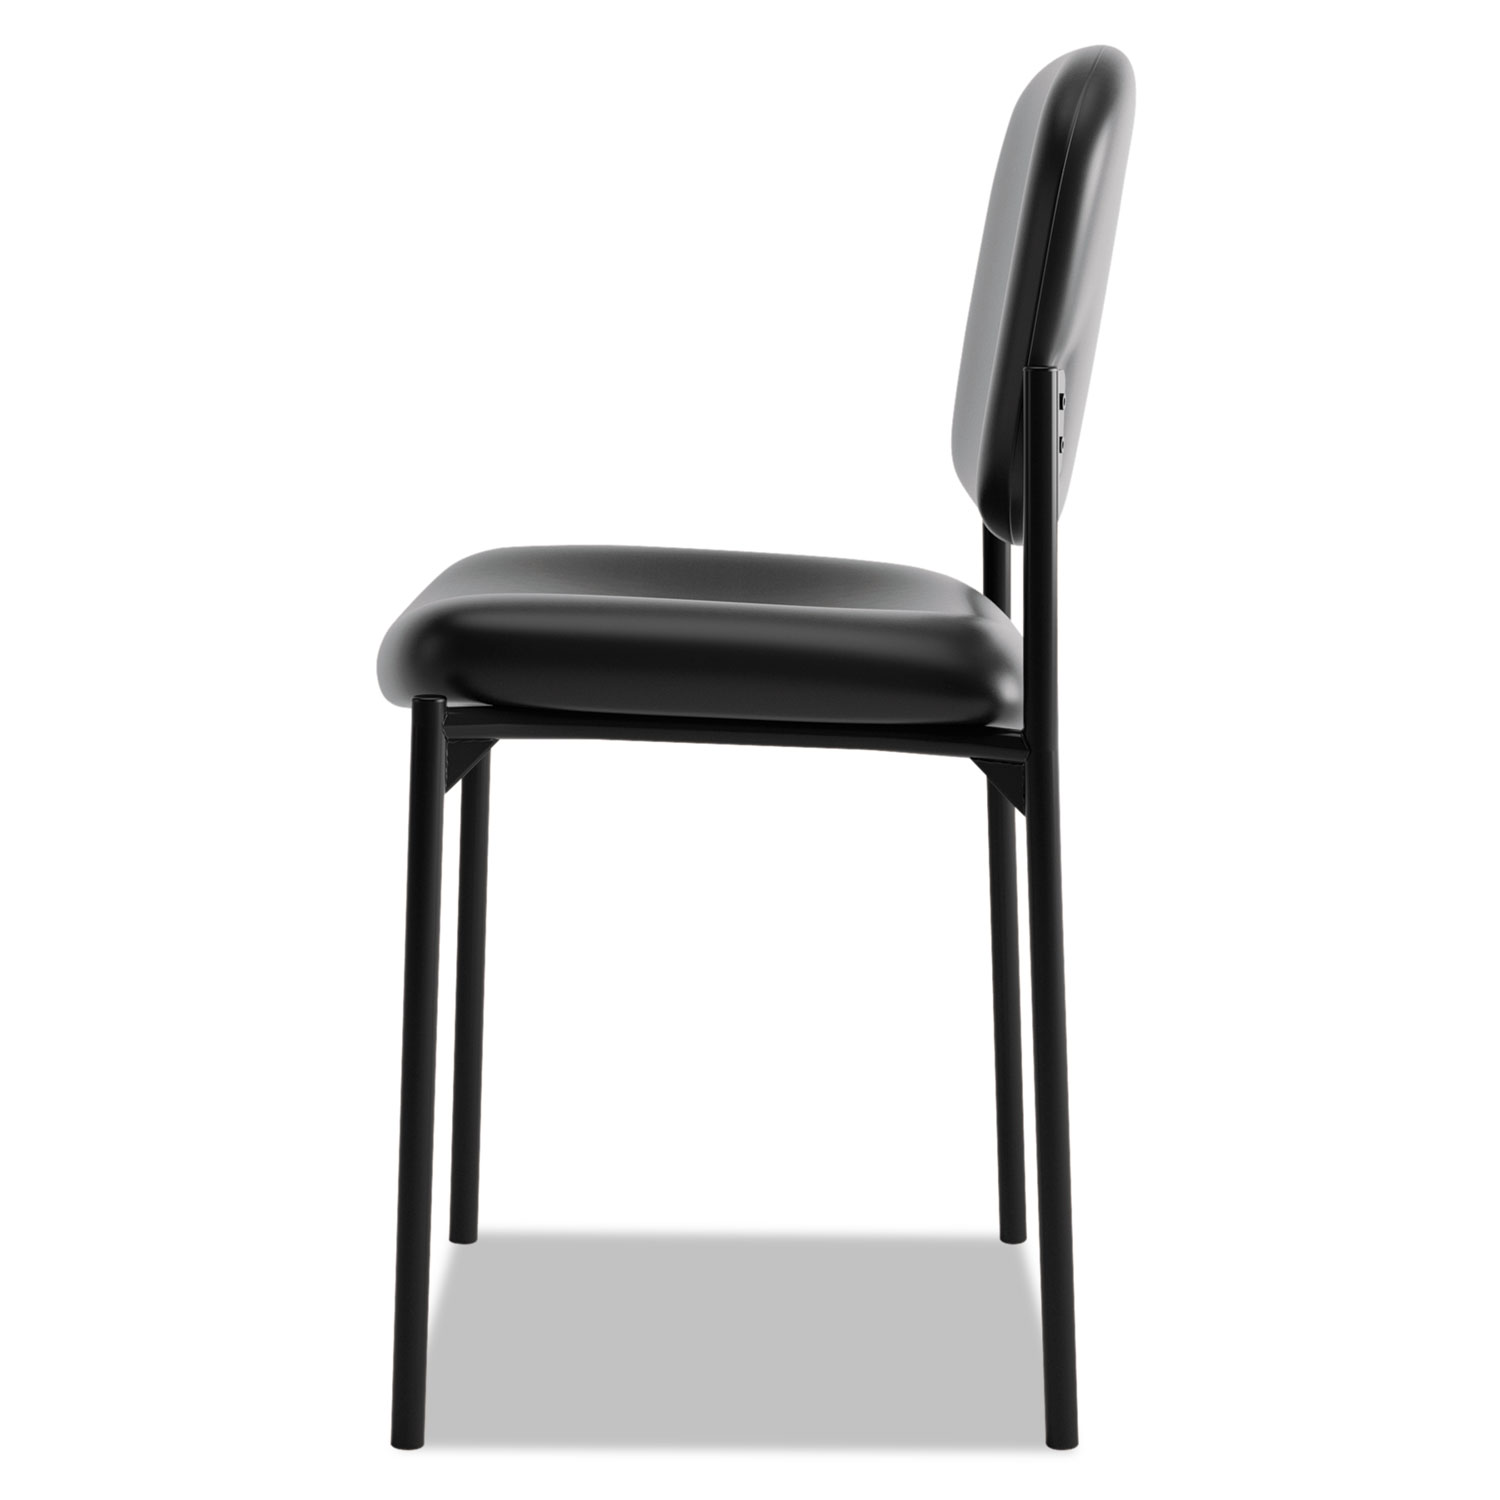 vl606 series stacking armless guest chair by hon bsxvl606sb11